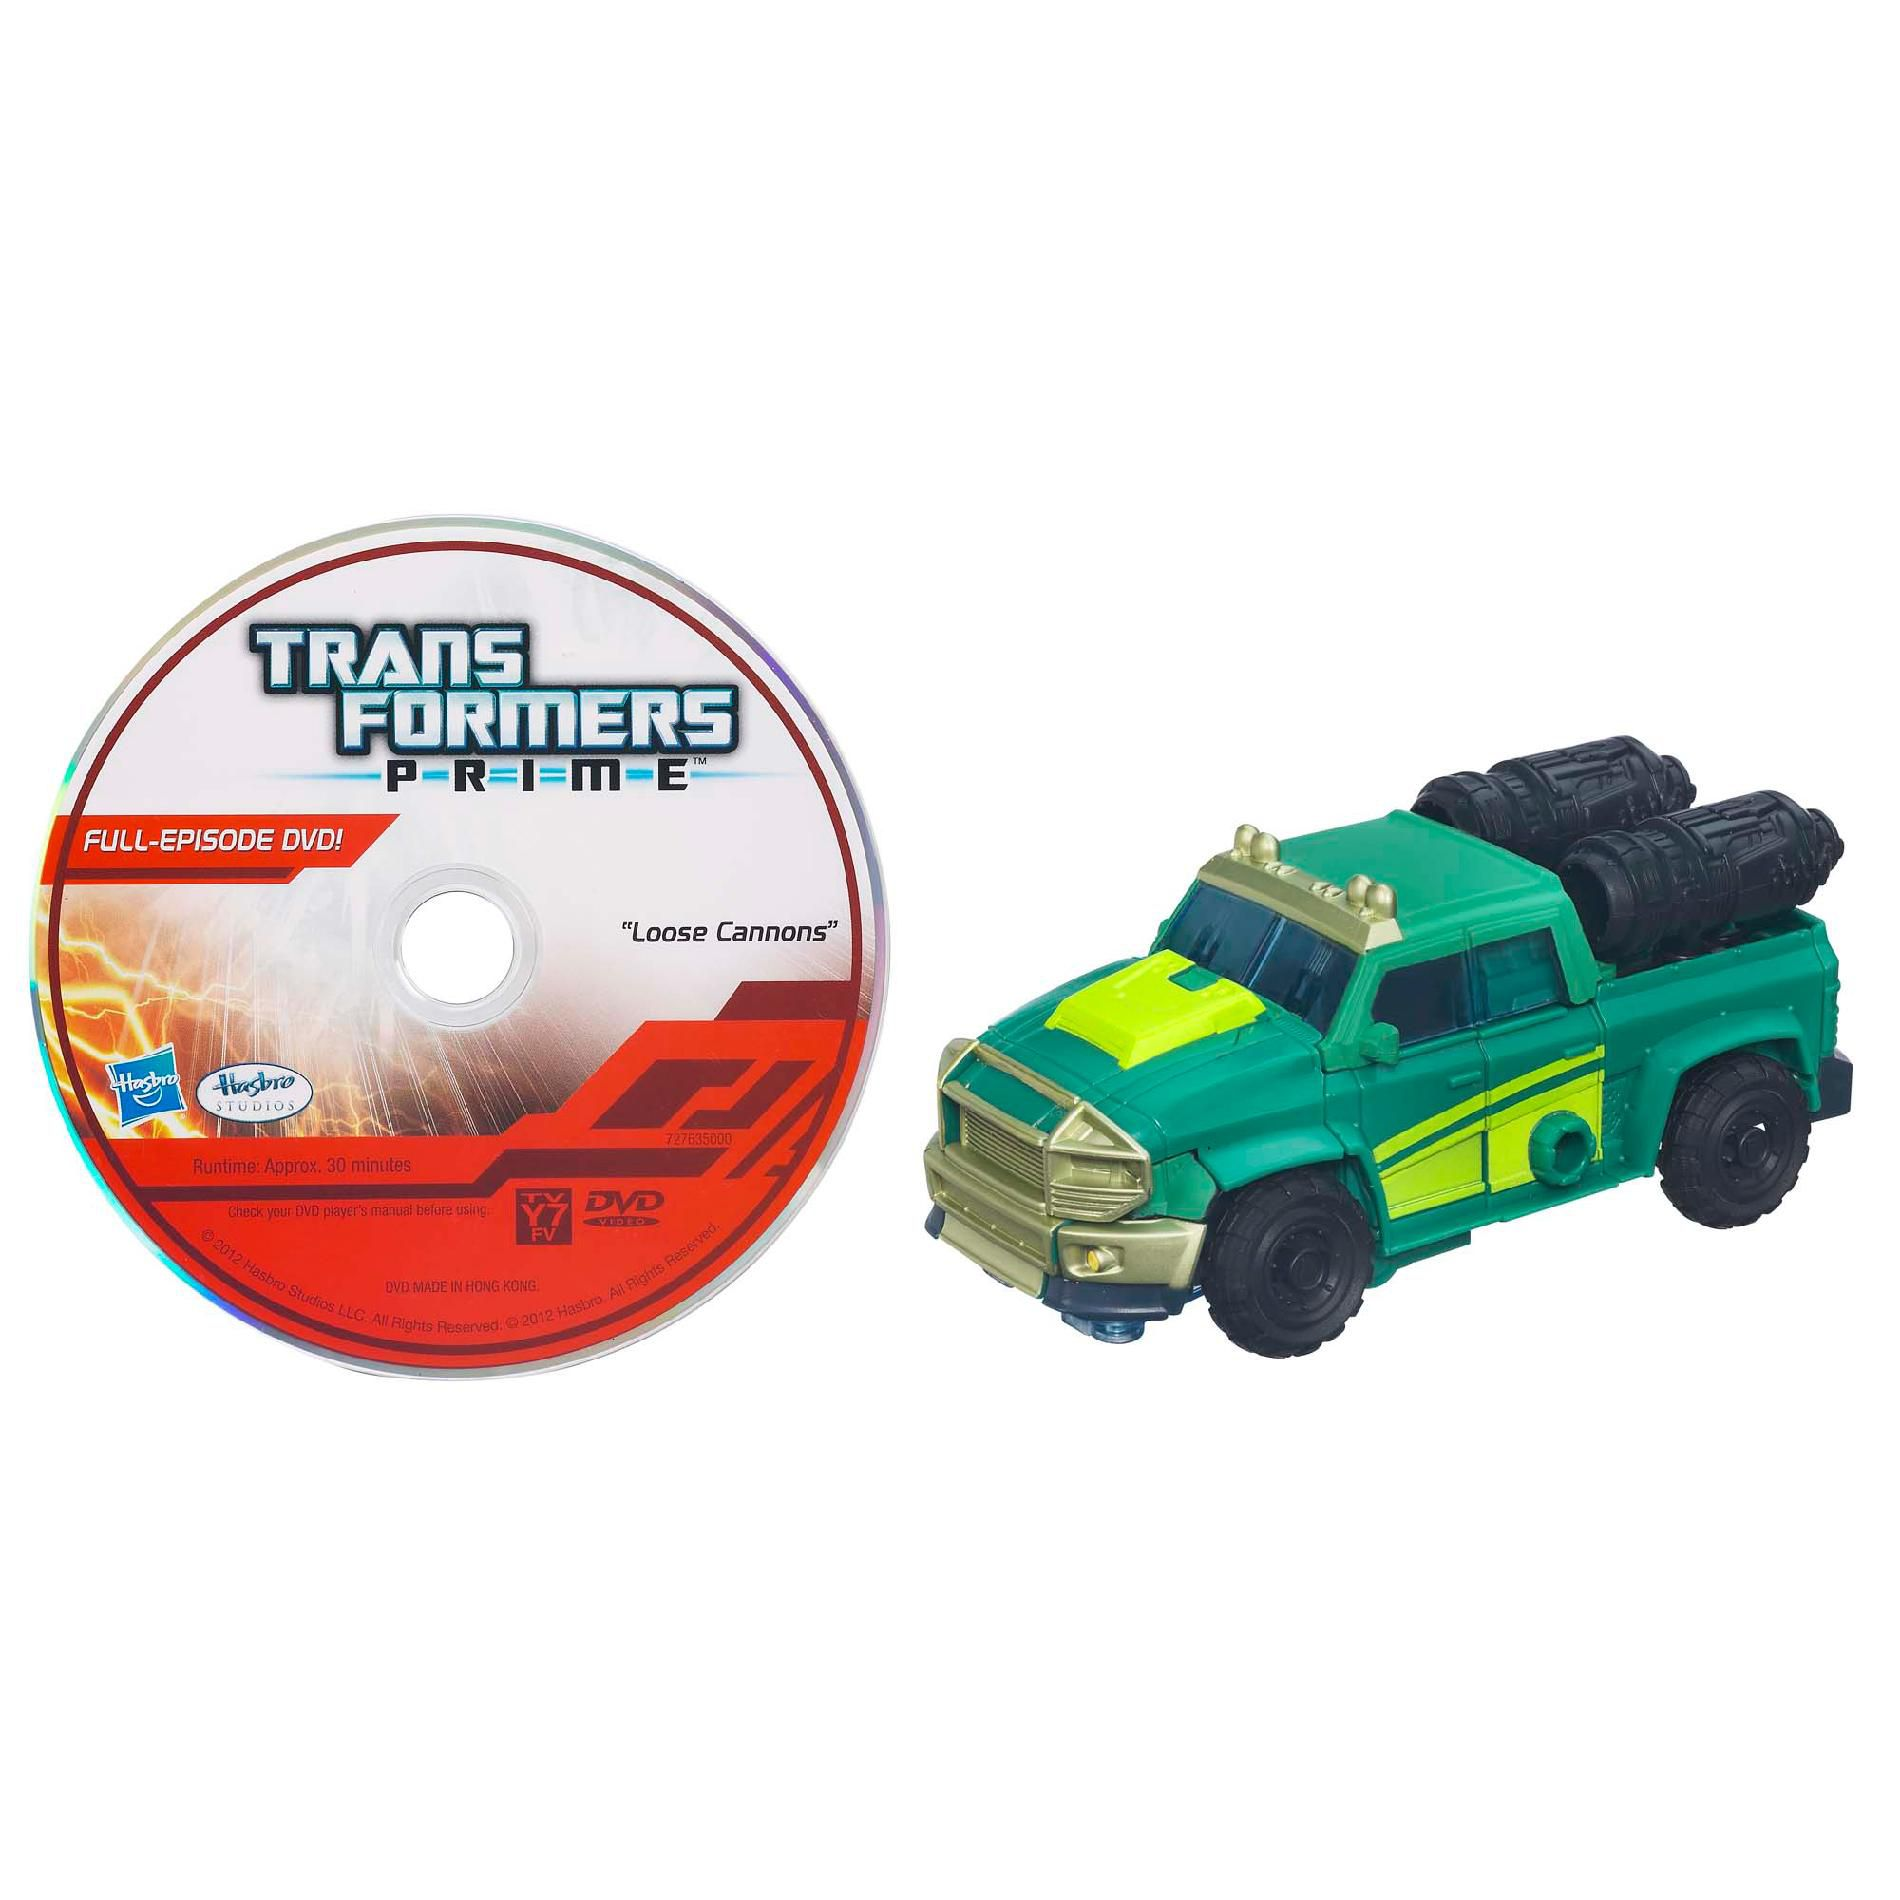 TRANSFORMERS PRIME ROBOTS IN DISGUISE Deluxe